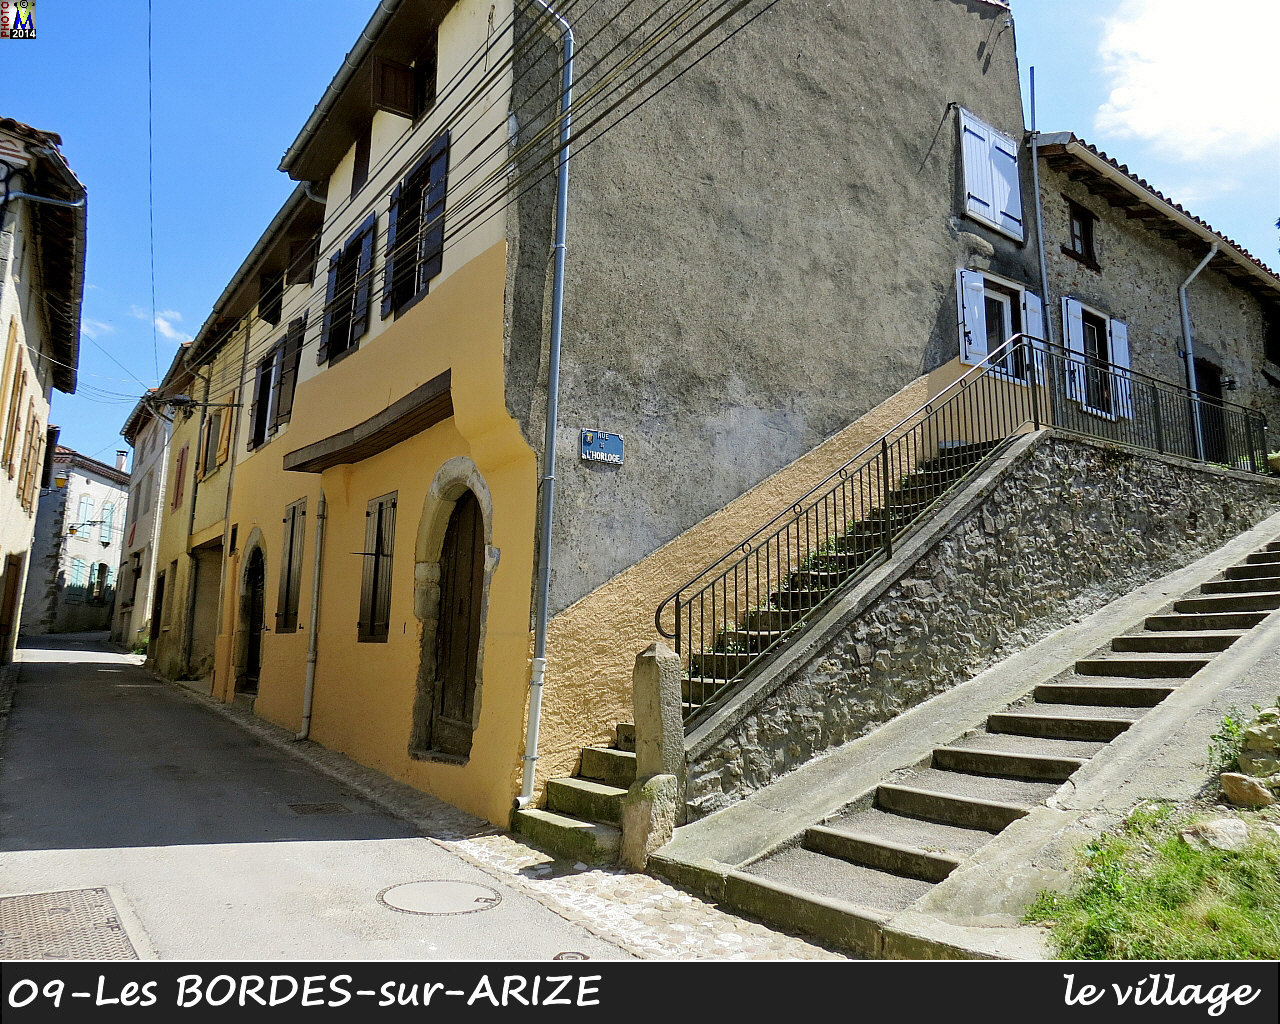 09BORDES-ARIZE_village_128.jpg